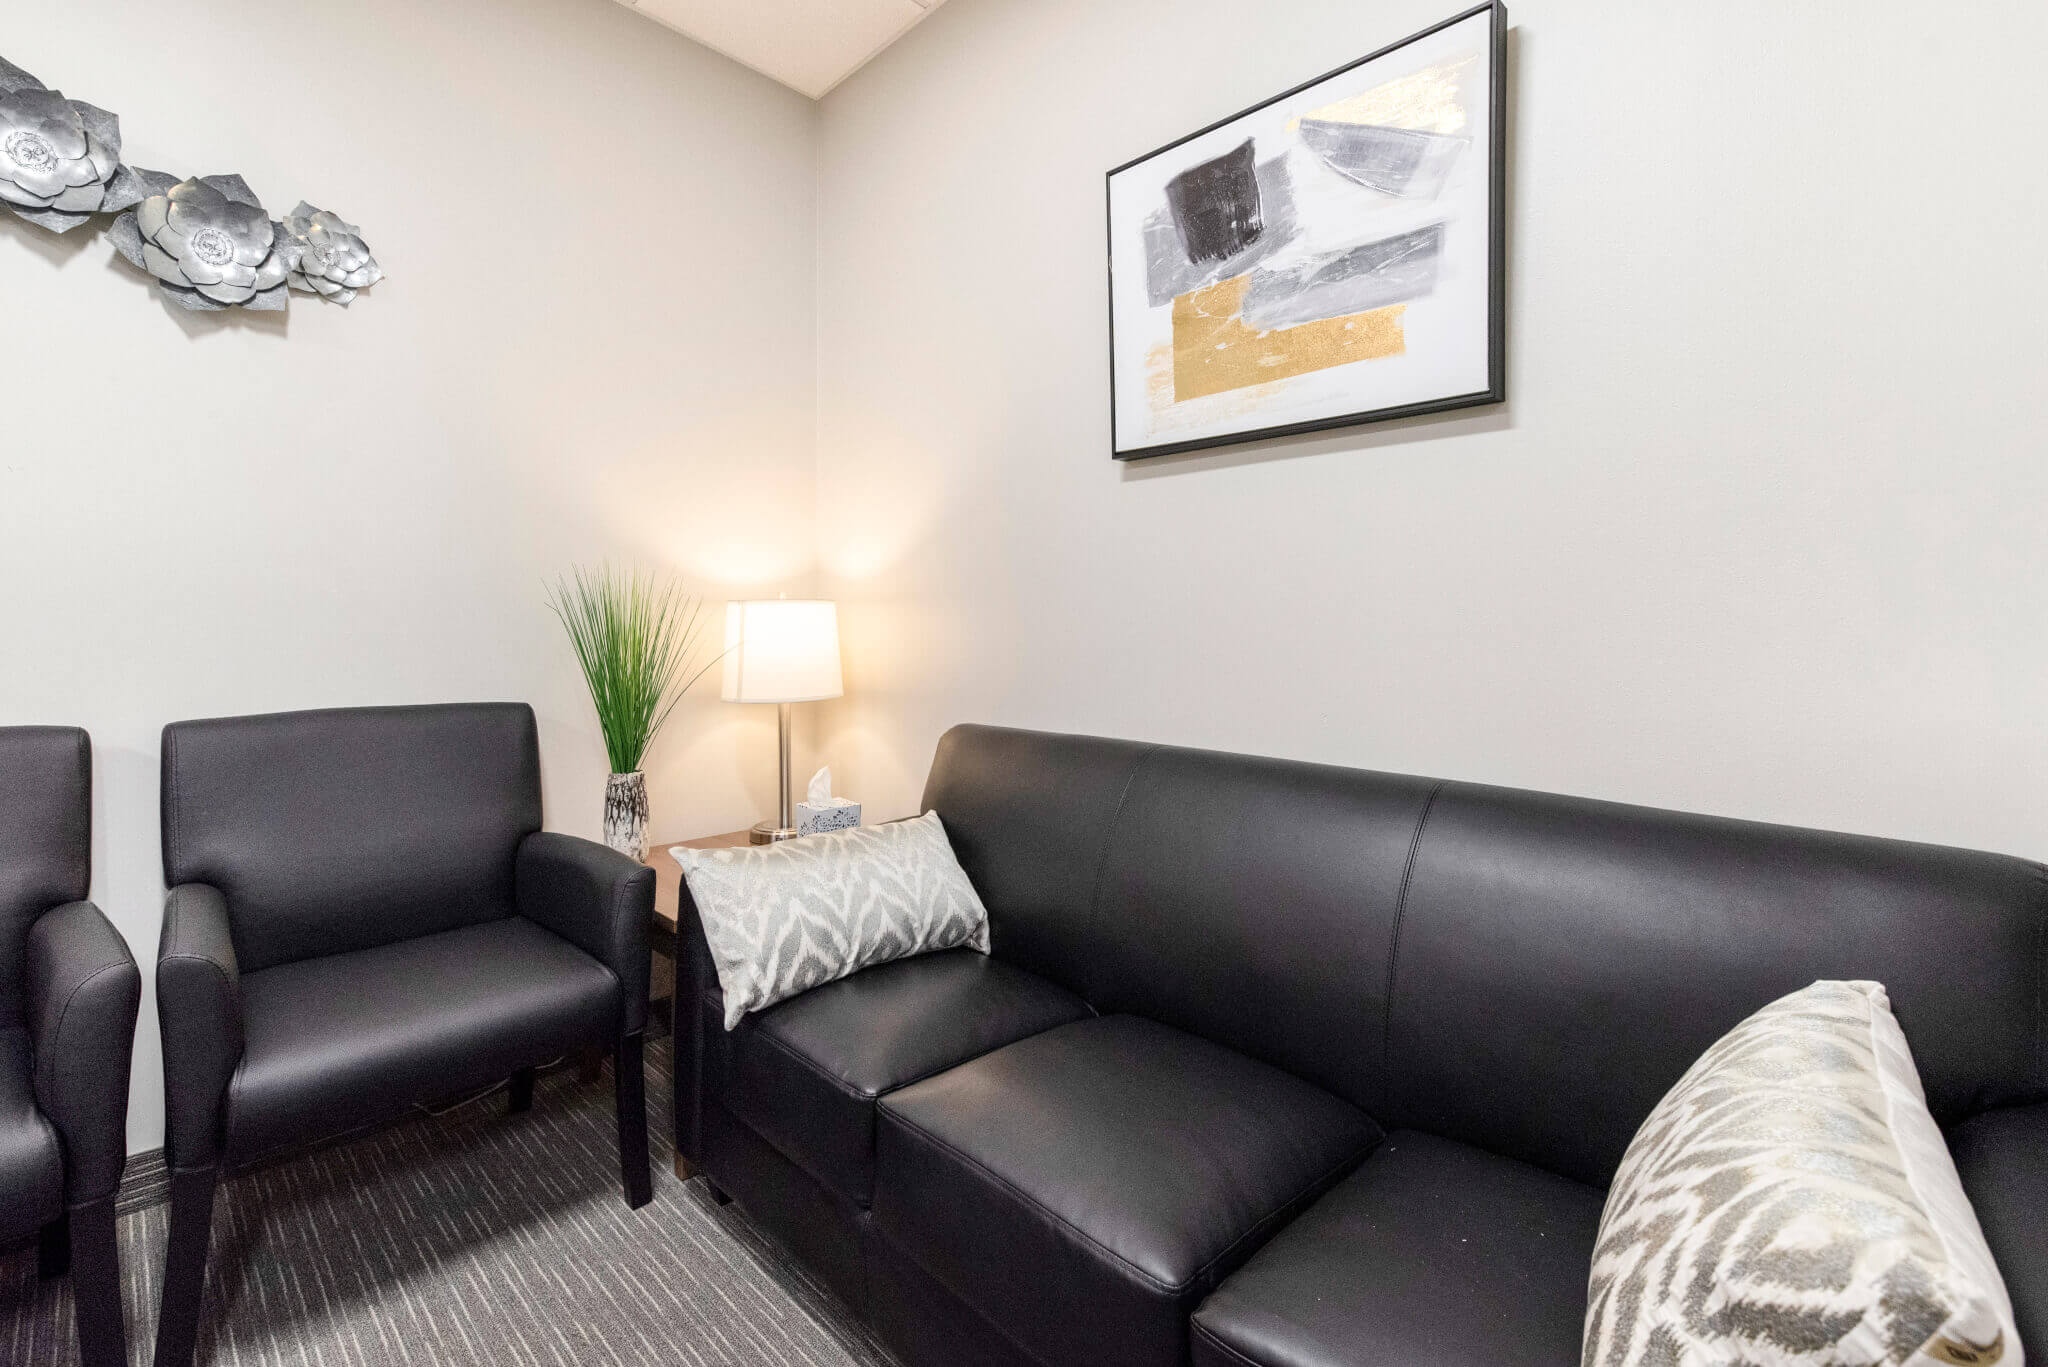 Glpg Great Lakes Psychology Group Counseling Therapy Schaumburg Illinois Couch